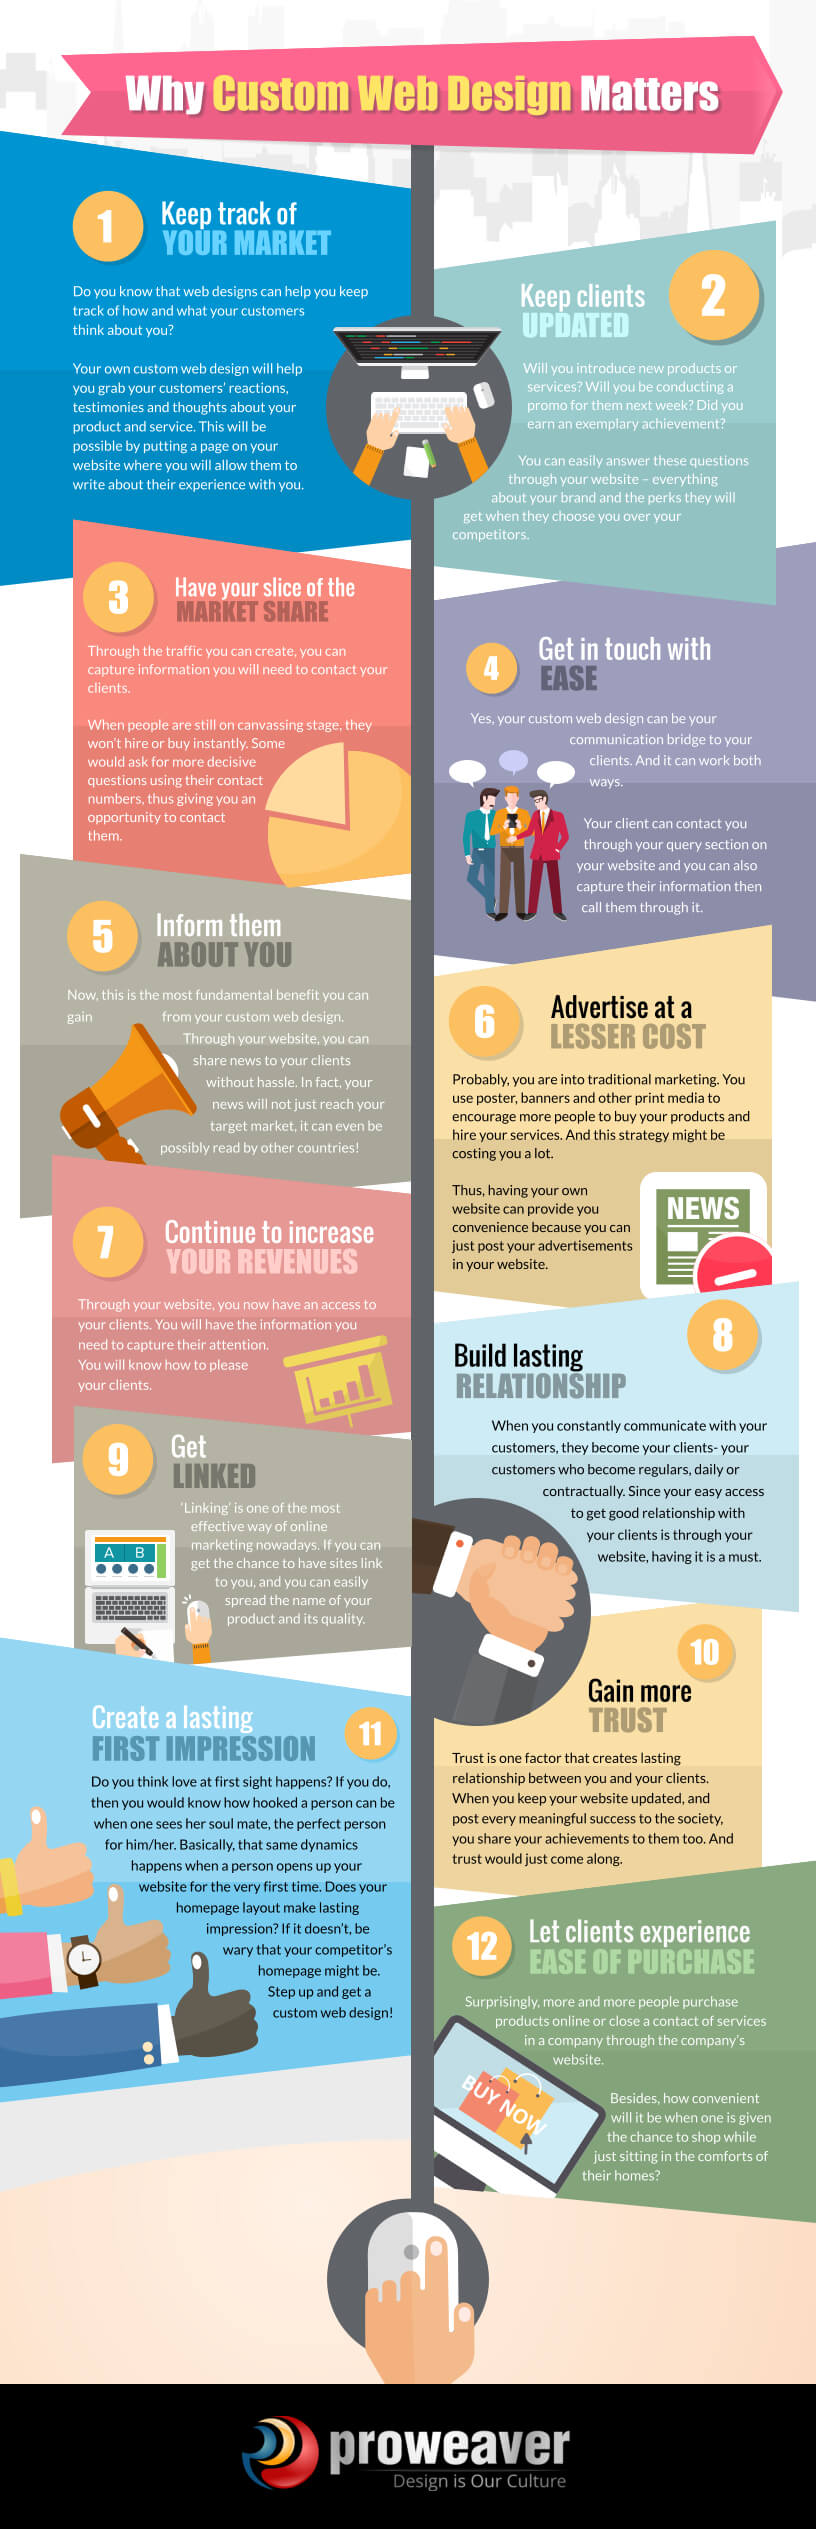 Why-Custom-Web-Design-Matters-infographic-plaza